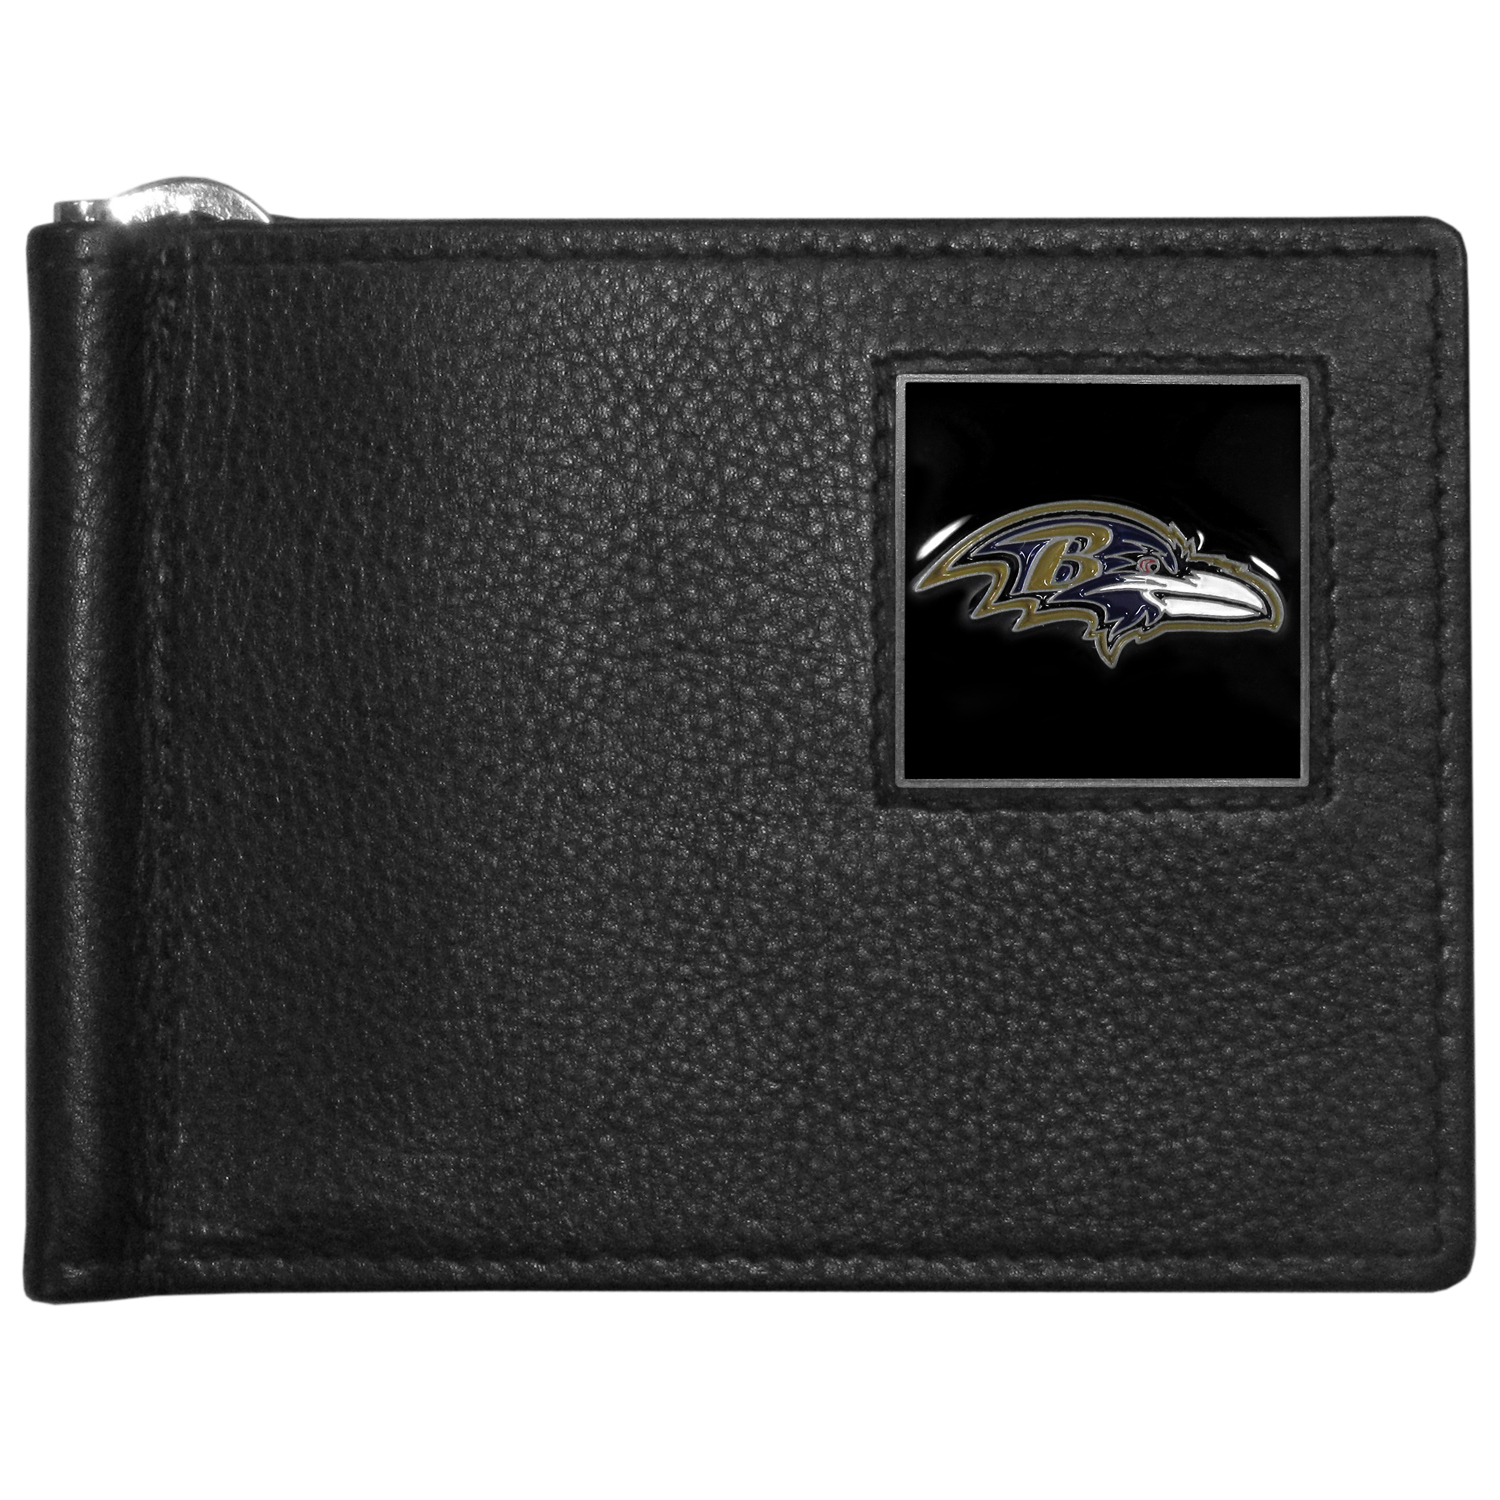 Baltimore Ravens Leather Bill Clip Wallet - This cool new style wallet features an inner, metal bill clip that lips up for easy access. The super slim wallet holds tons of stuff with ample pockets, credit card slots & windowed ID slot.  The wallet is made of genuine fine grain leather and it finished with a metal Baltimore Ravens emblem. The wallet is shipped in gift box packaging.